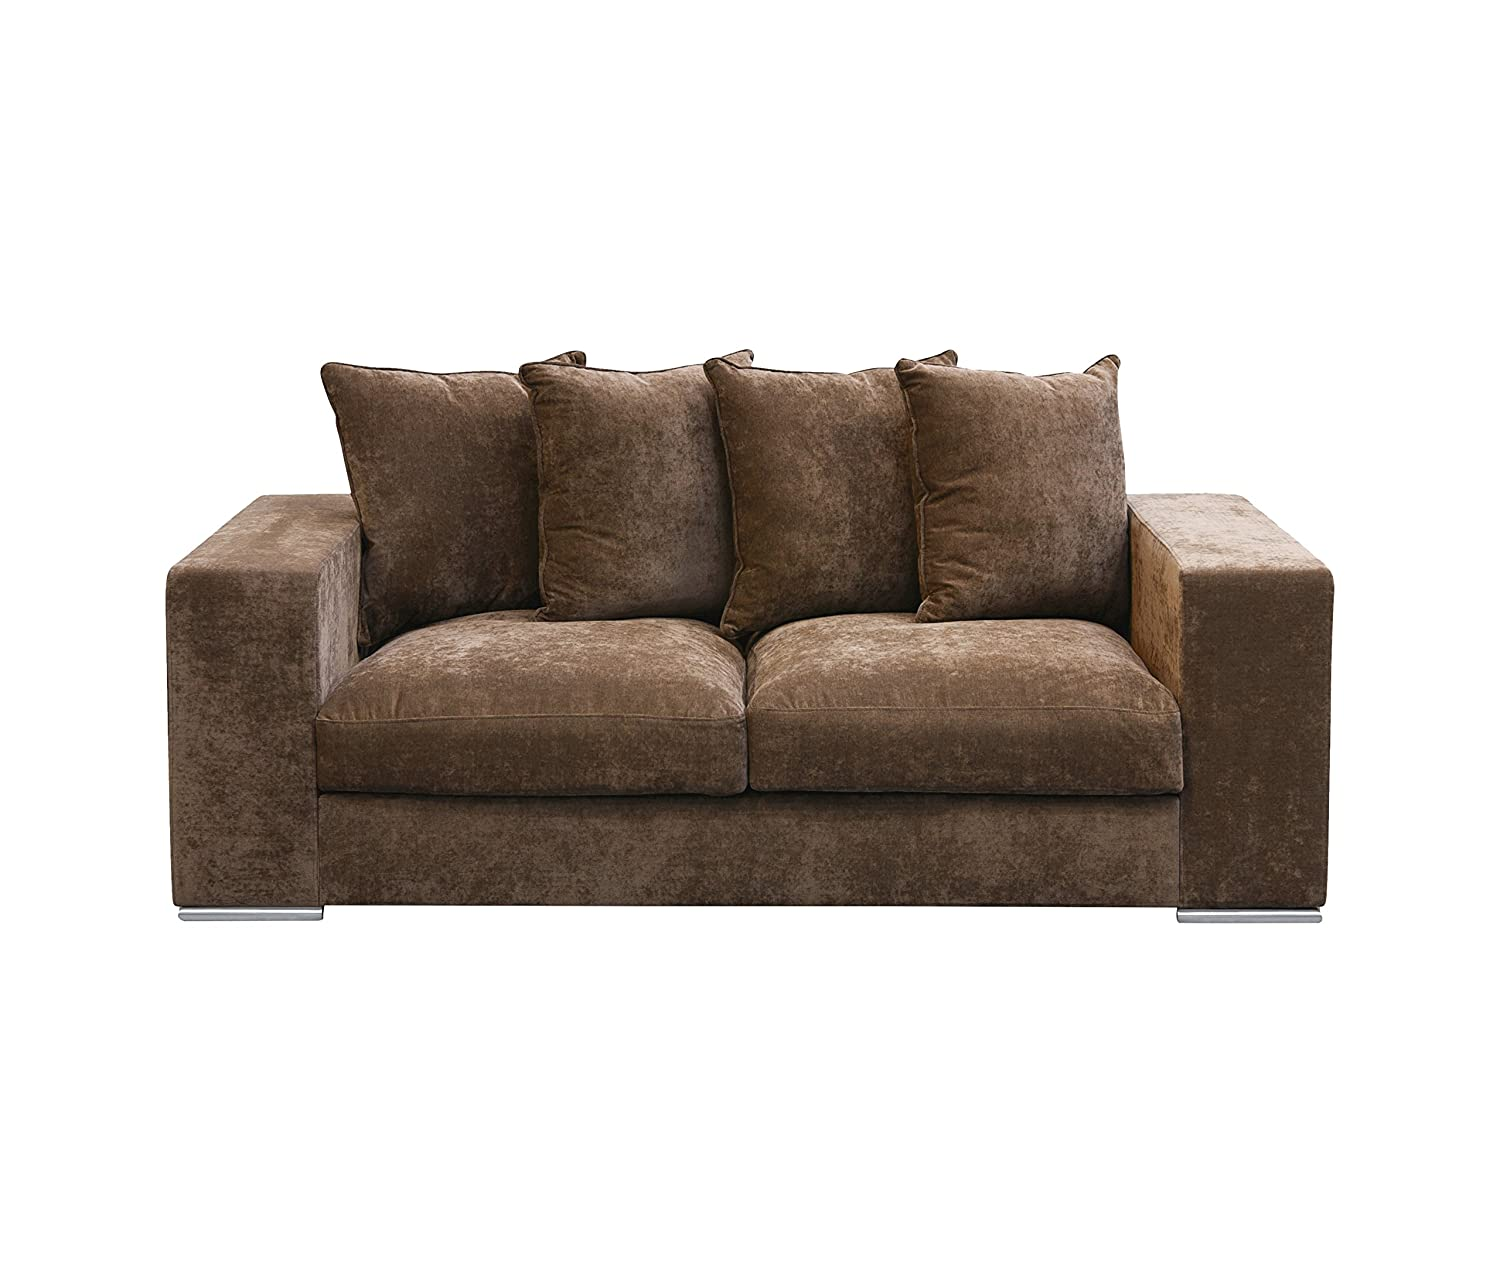 Samt sofa  Amaris Elements | Sofa 'George' 2-Sitzer, Samt aus Mikrofaser ...